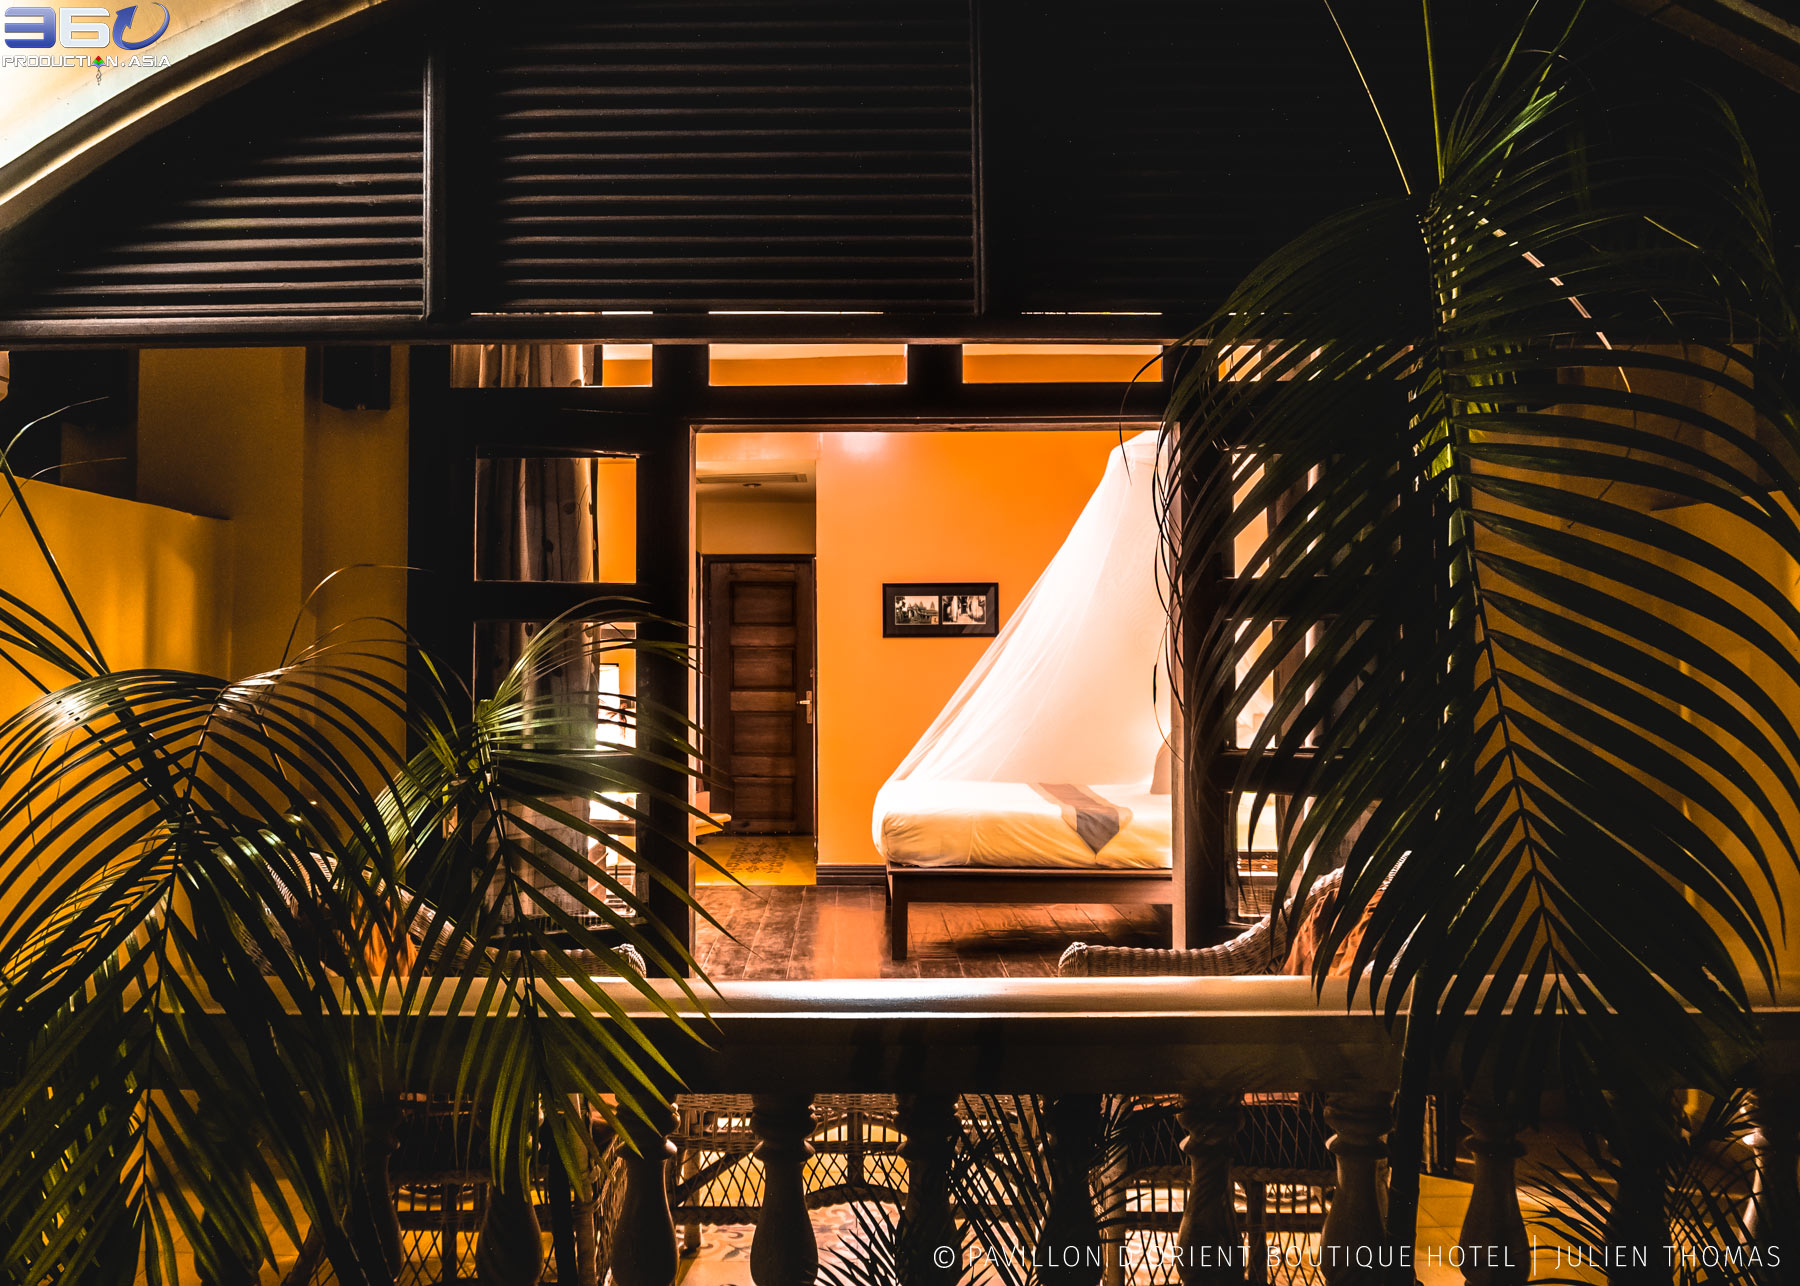 Relaxing double room with private balcony in Pavillon d'Orient Hotel Boutique, Siem Reap - Cambodia.